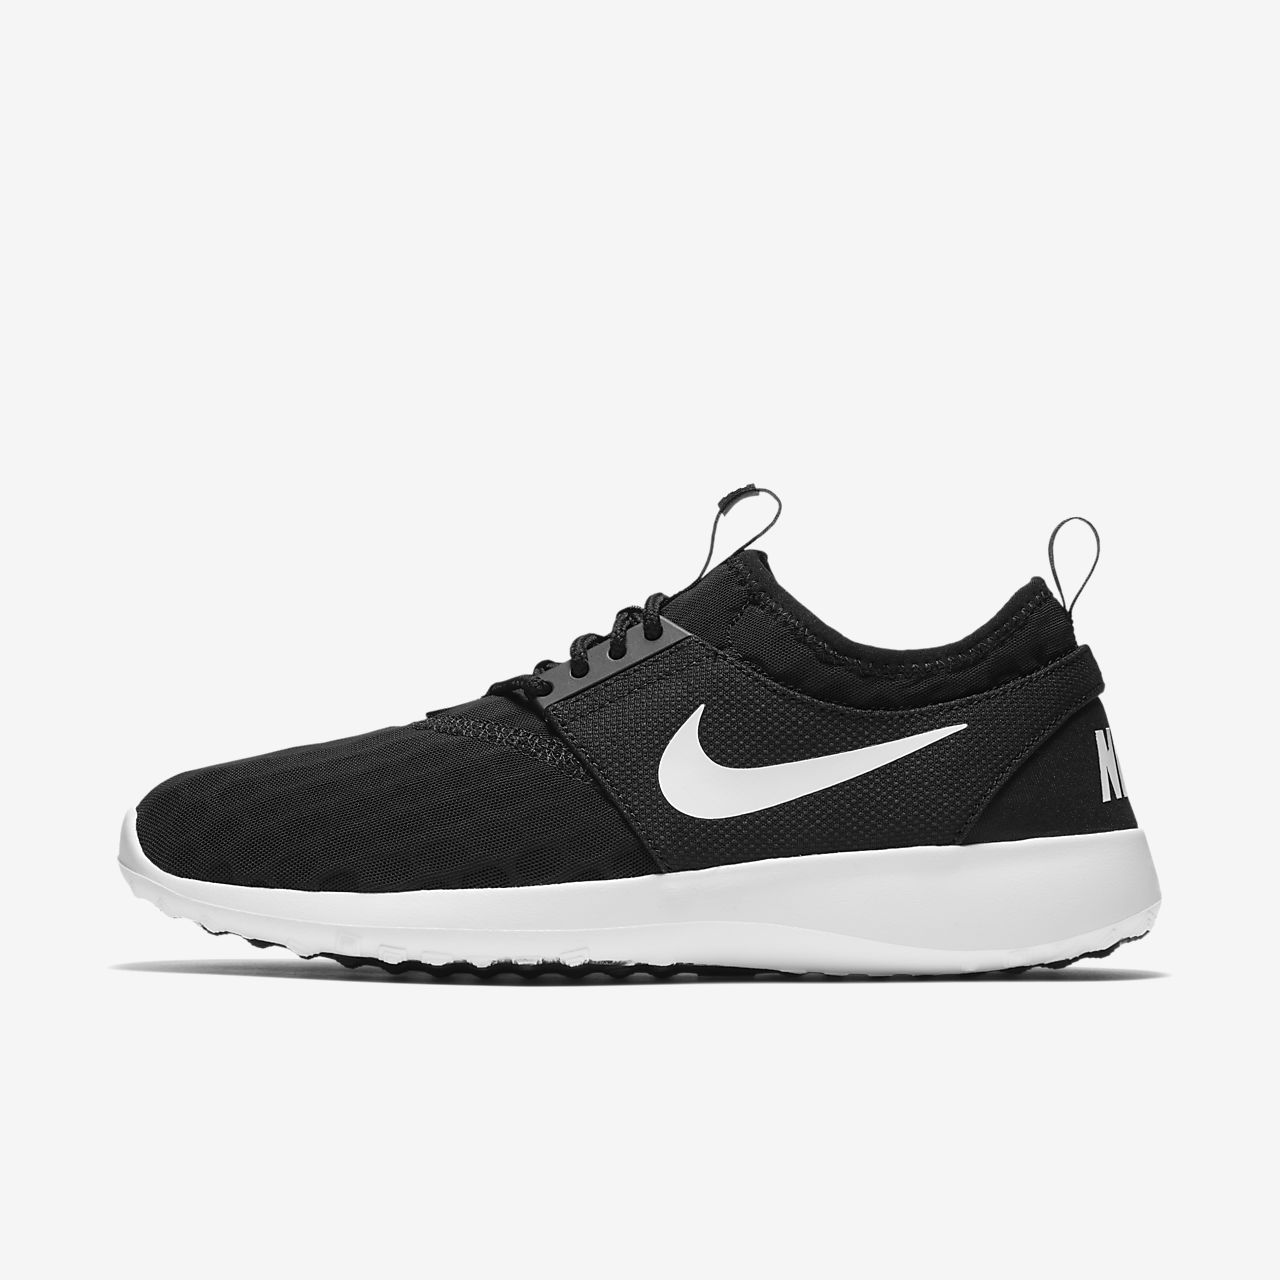 f5f36445a9882 Low Resolution Nike Juvenate Women s Shoe Nike Juvenate Women s Shoe